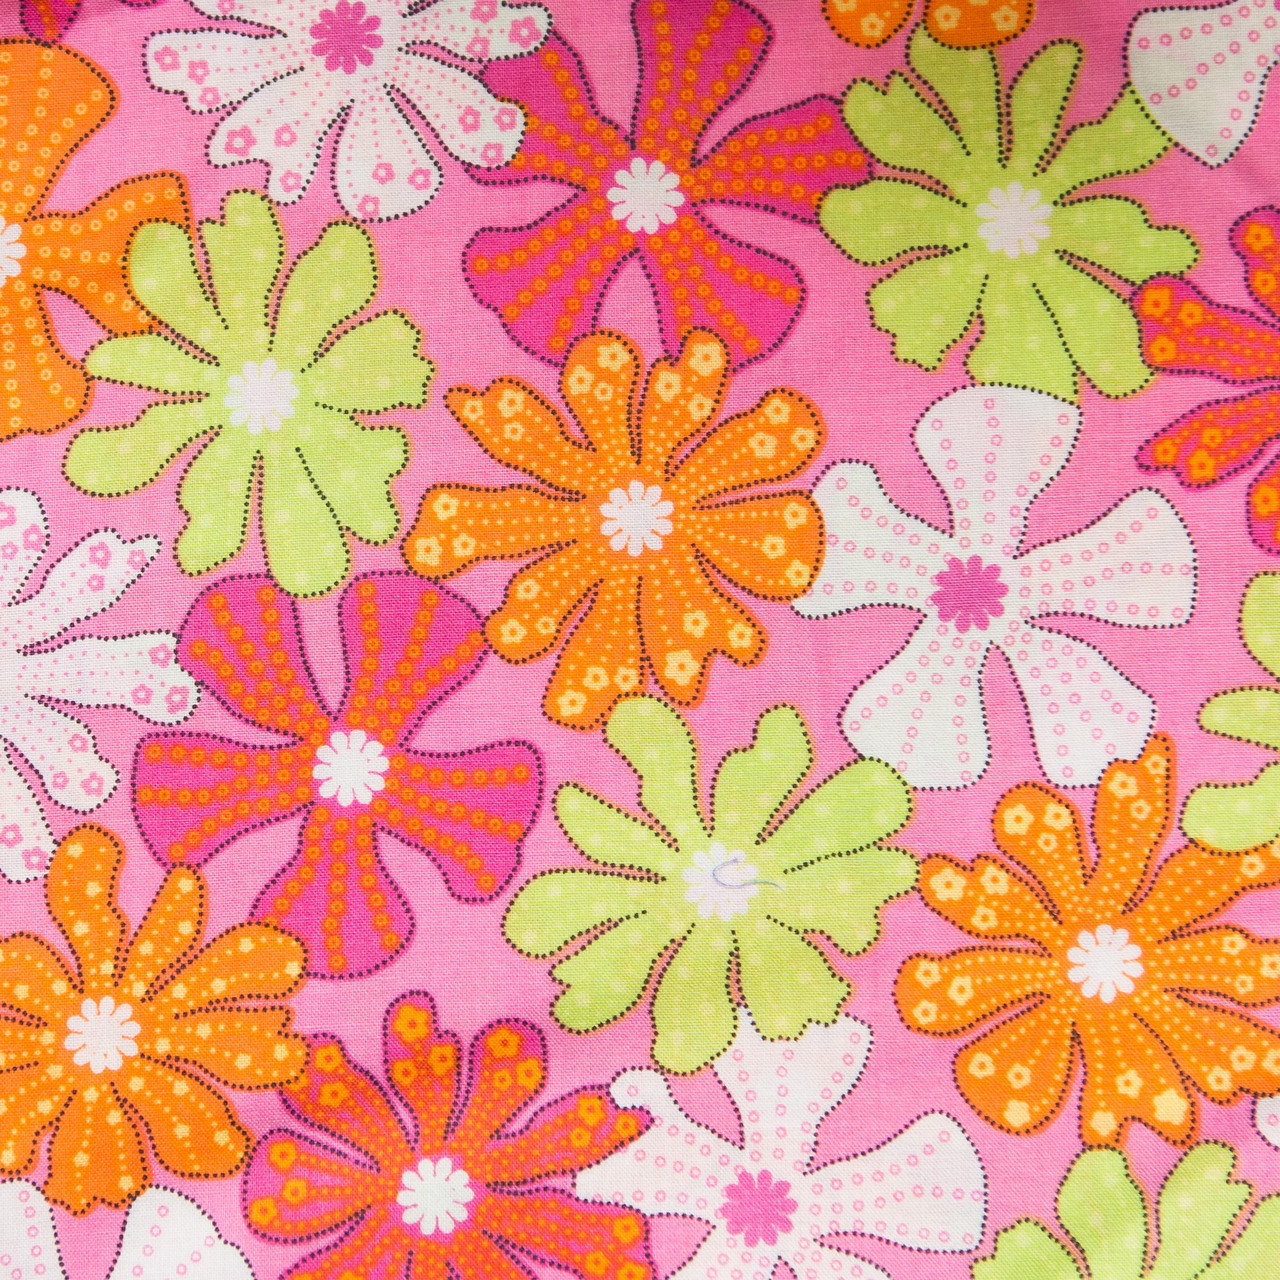 Day in the Sun print